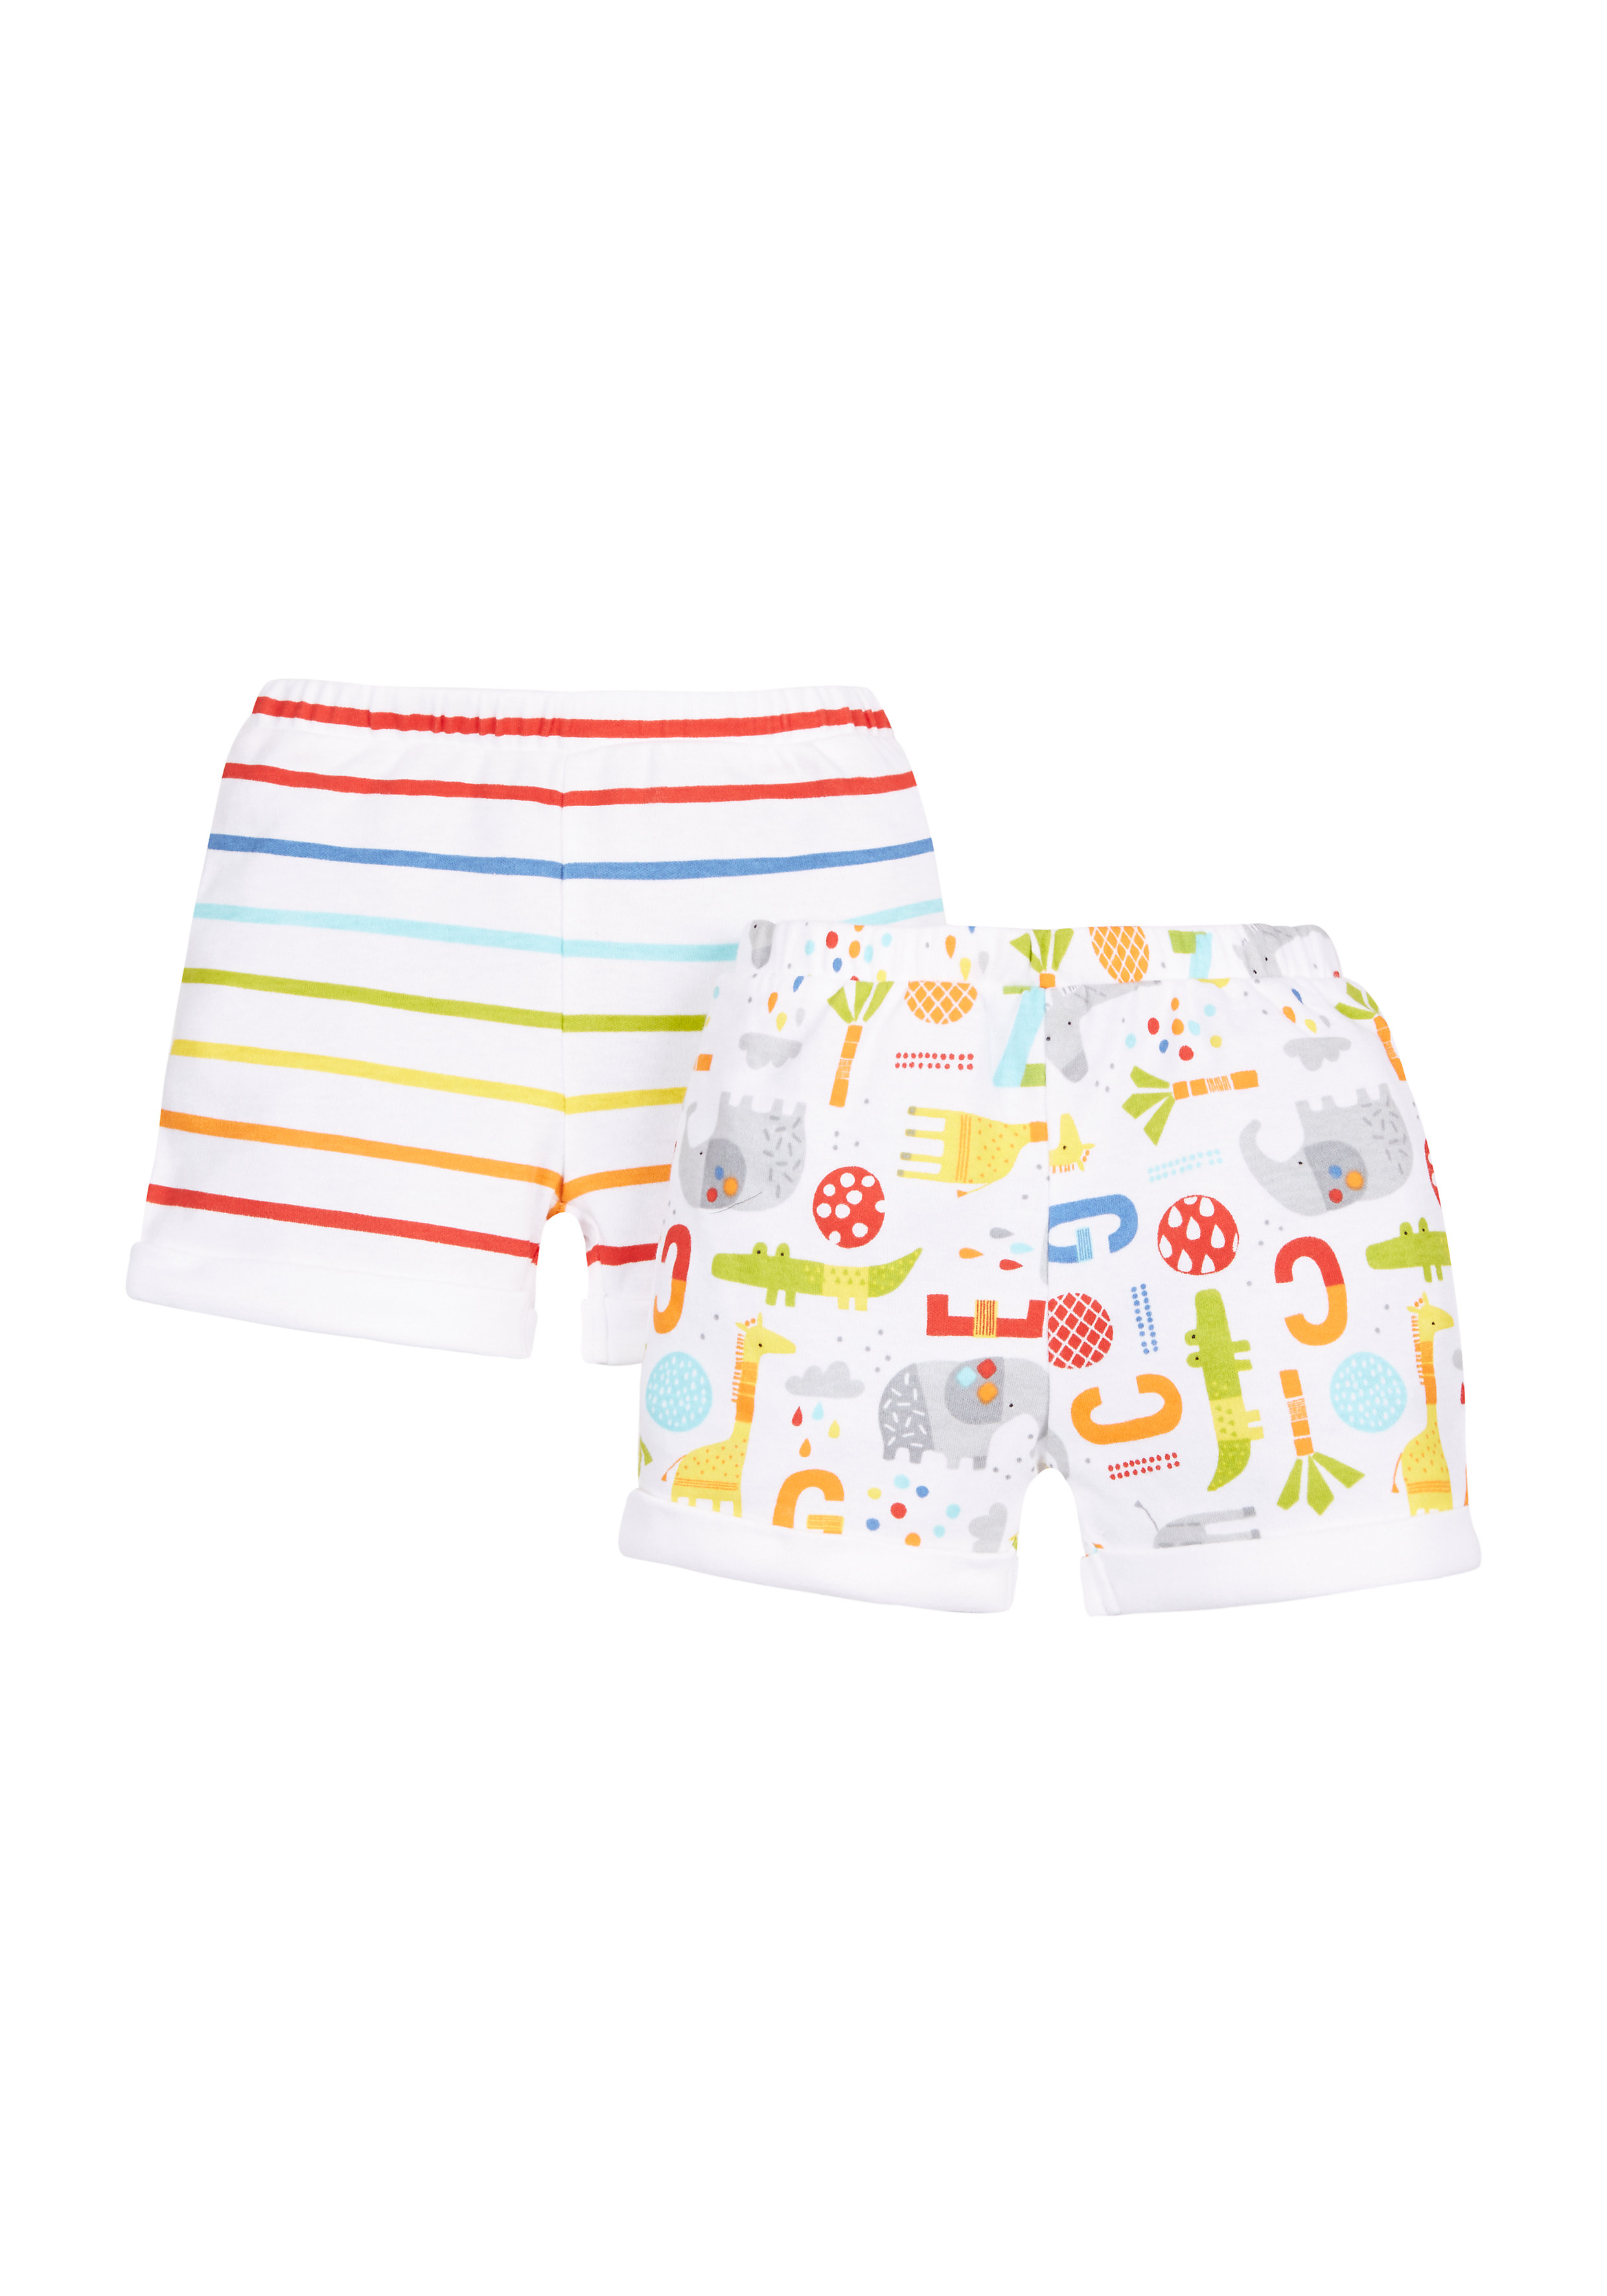 Mothercare | Unisex Striped And Printed Shorts - Pack Of 2 - Multicolor